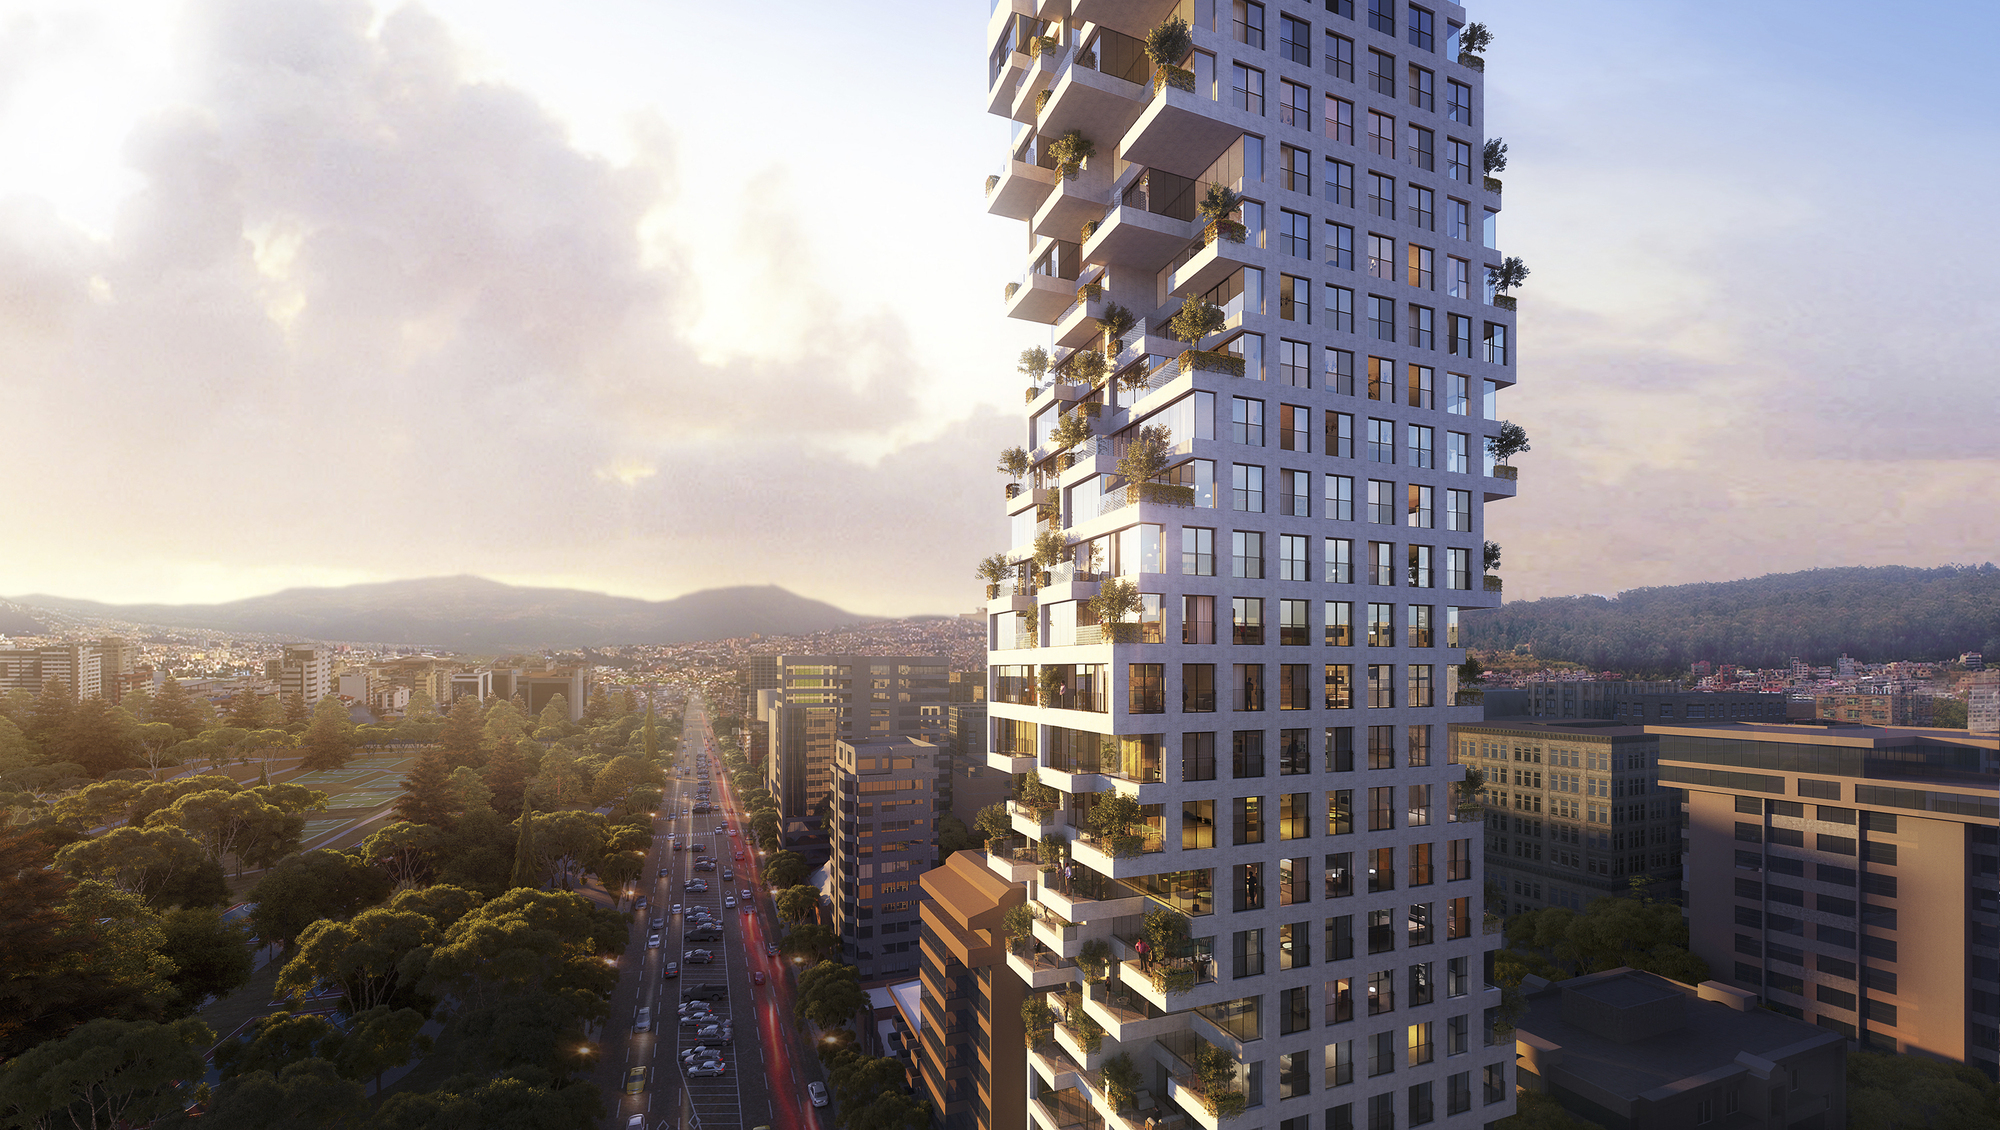 safdie architects announce design for fractalized residential tower